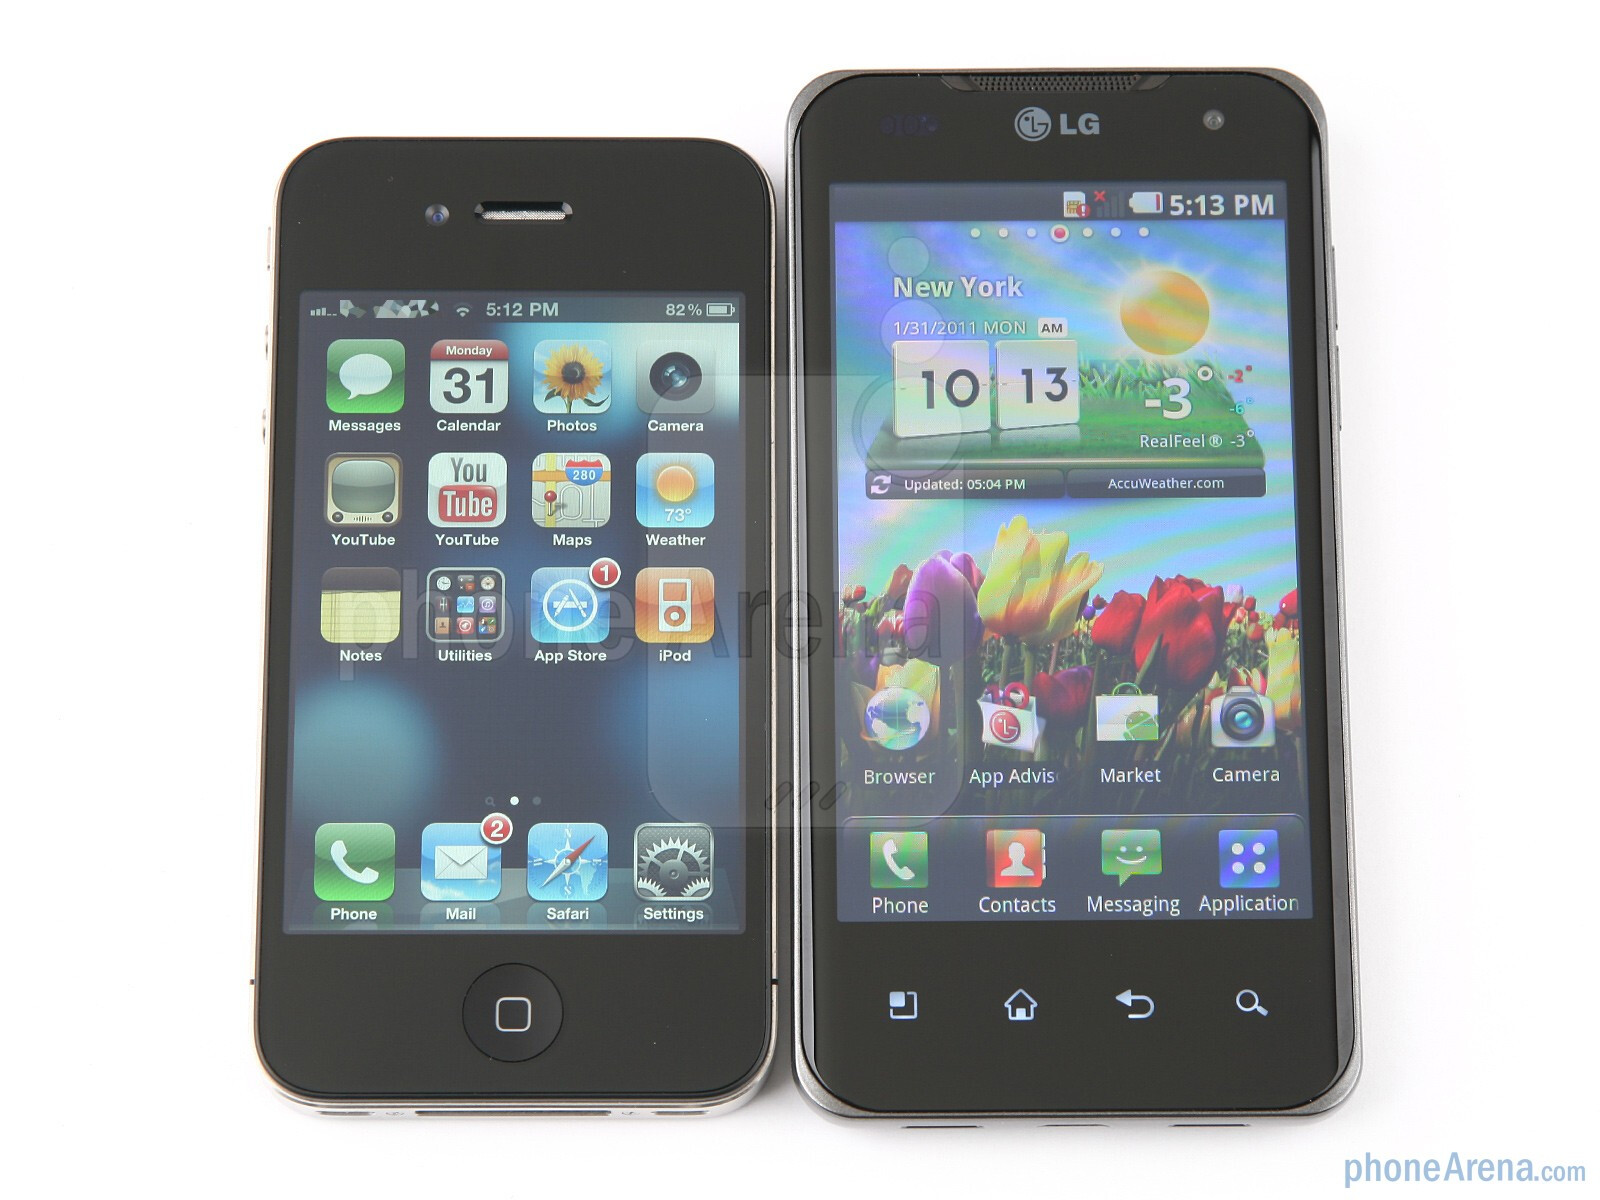 LG P990 ANDROID PHONE DRIVERS FOR MAC